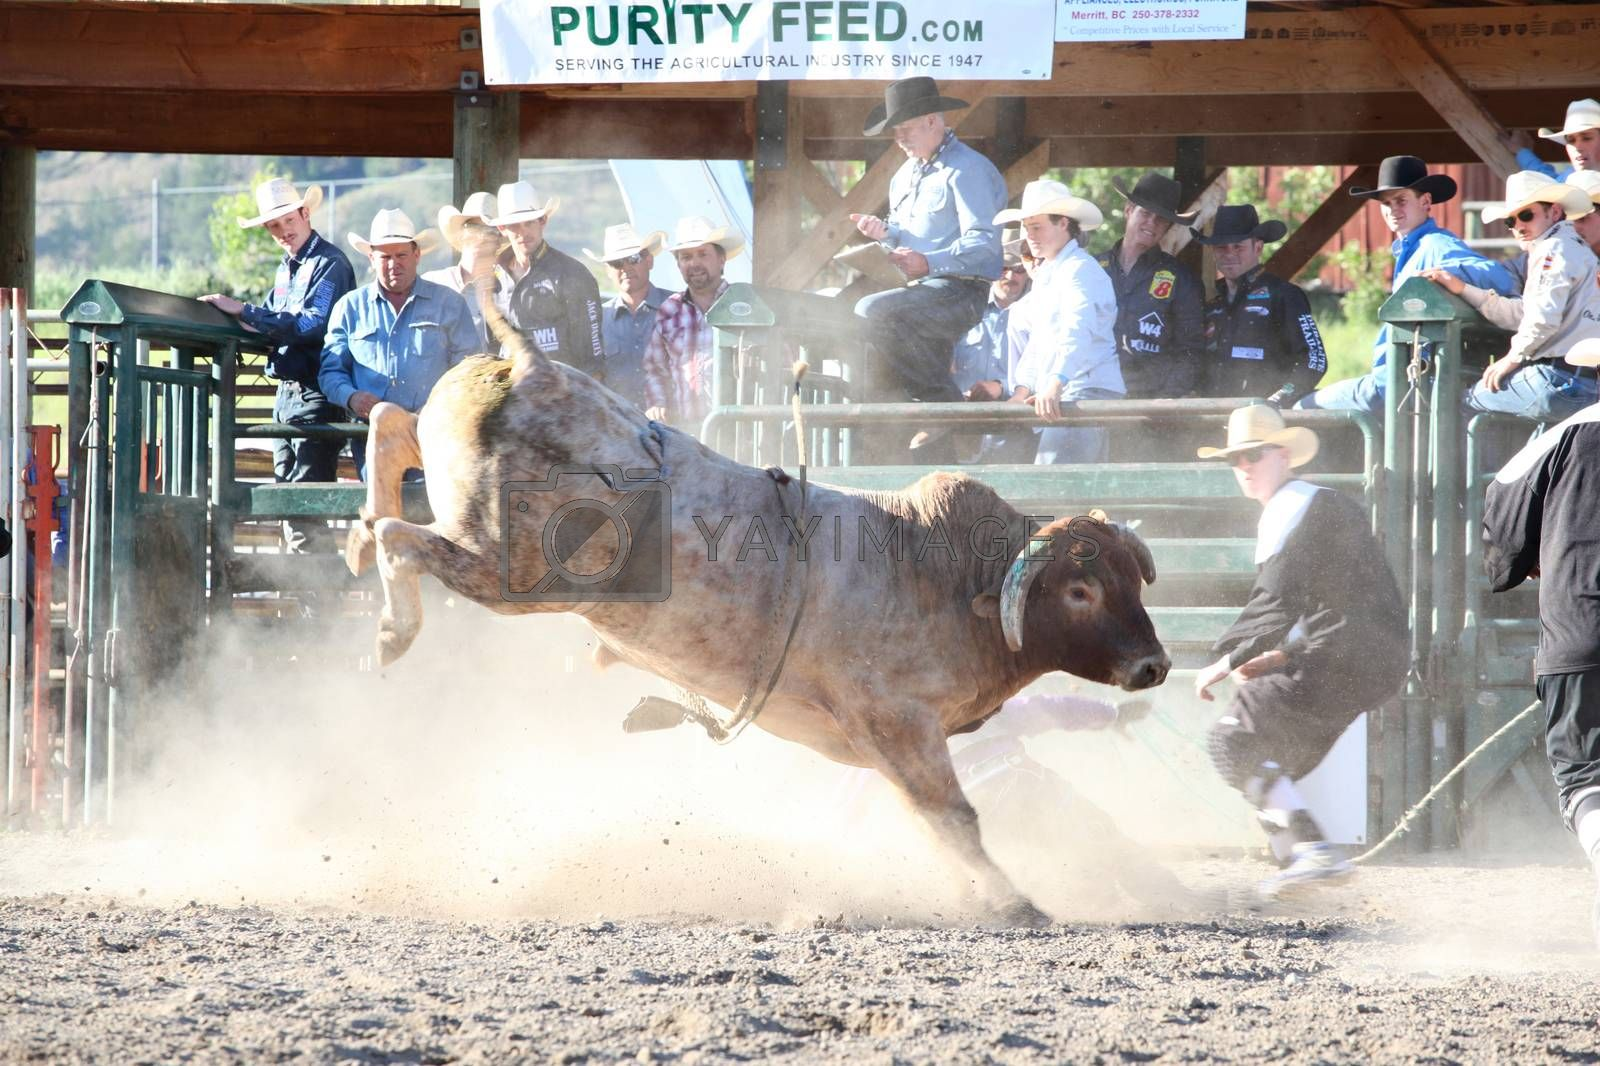 MERRITT, B.C. CANADA - May 30, 2015: Bull rider riding in the first round of The 3rd Annual Ty Pozzobon Invitational PBR Event.